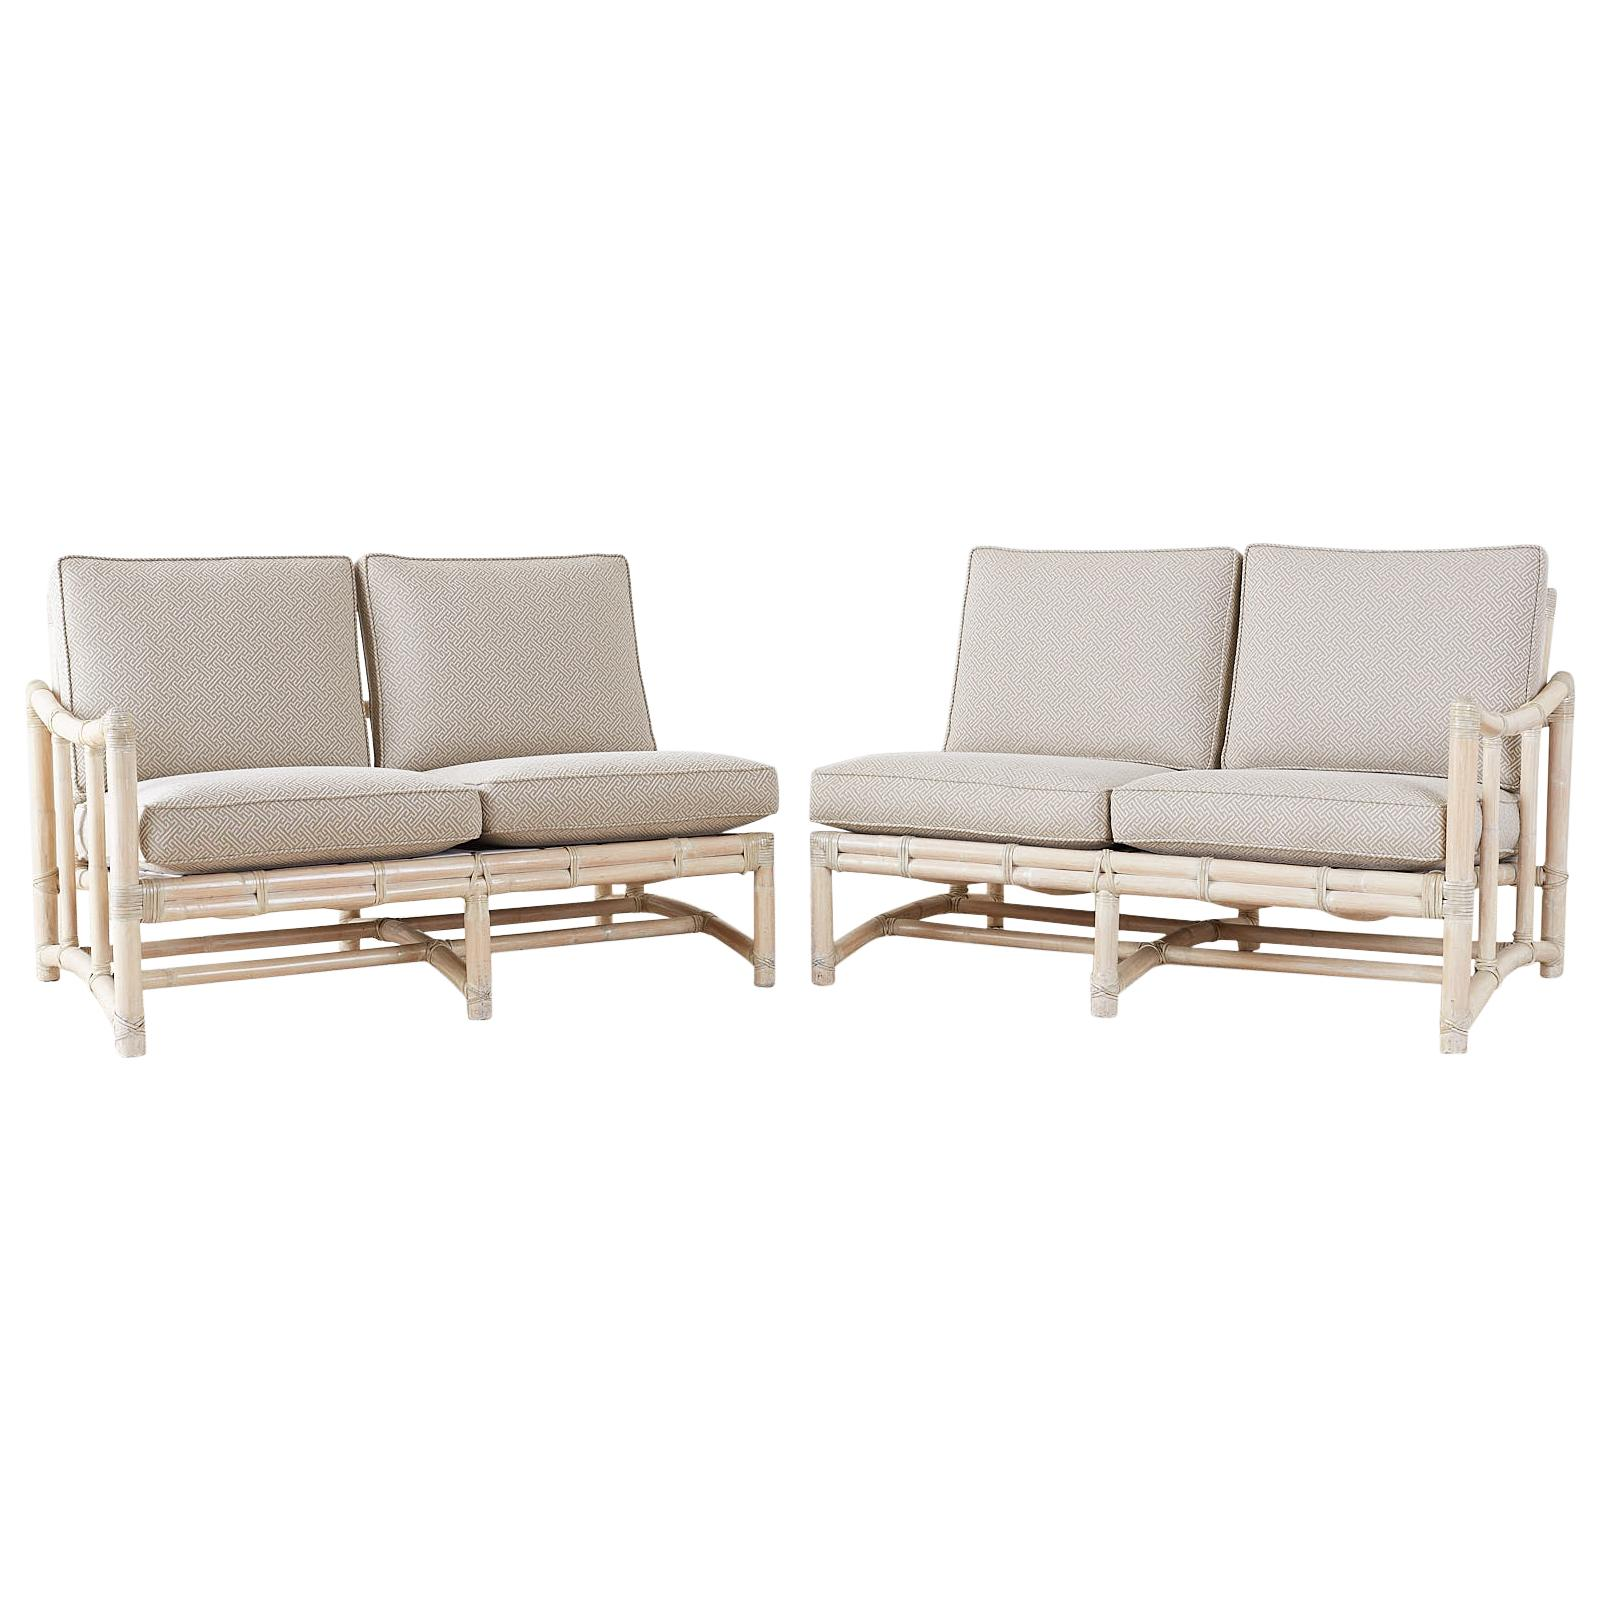 Awesome Pair Of Mcguire California Modern Sectional Sofas Machost Co Dining Chair Design Ideas Machostcouk